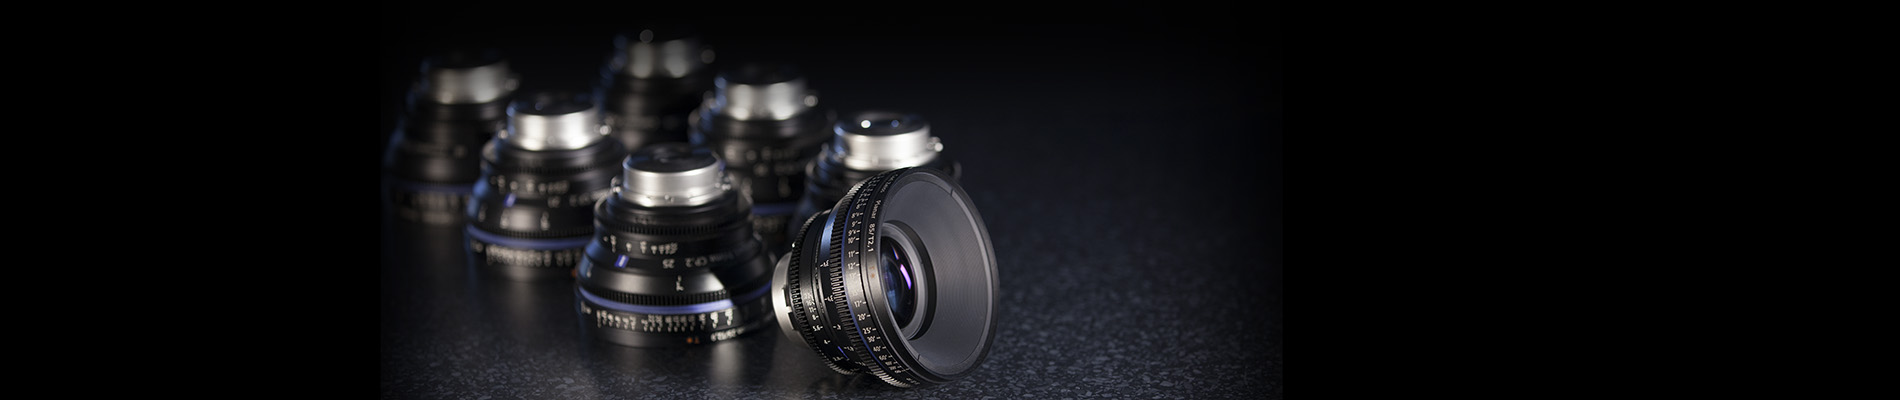 PL lenses available for rent in Adelaide at Picture Hire Australia. Part of a wide range of Canon, Sigma, Samyang and Zeiss lenses